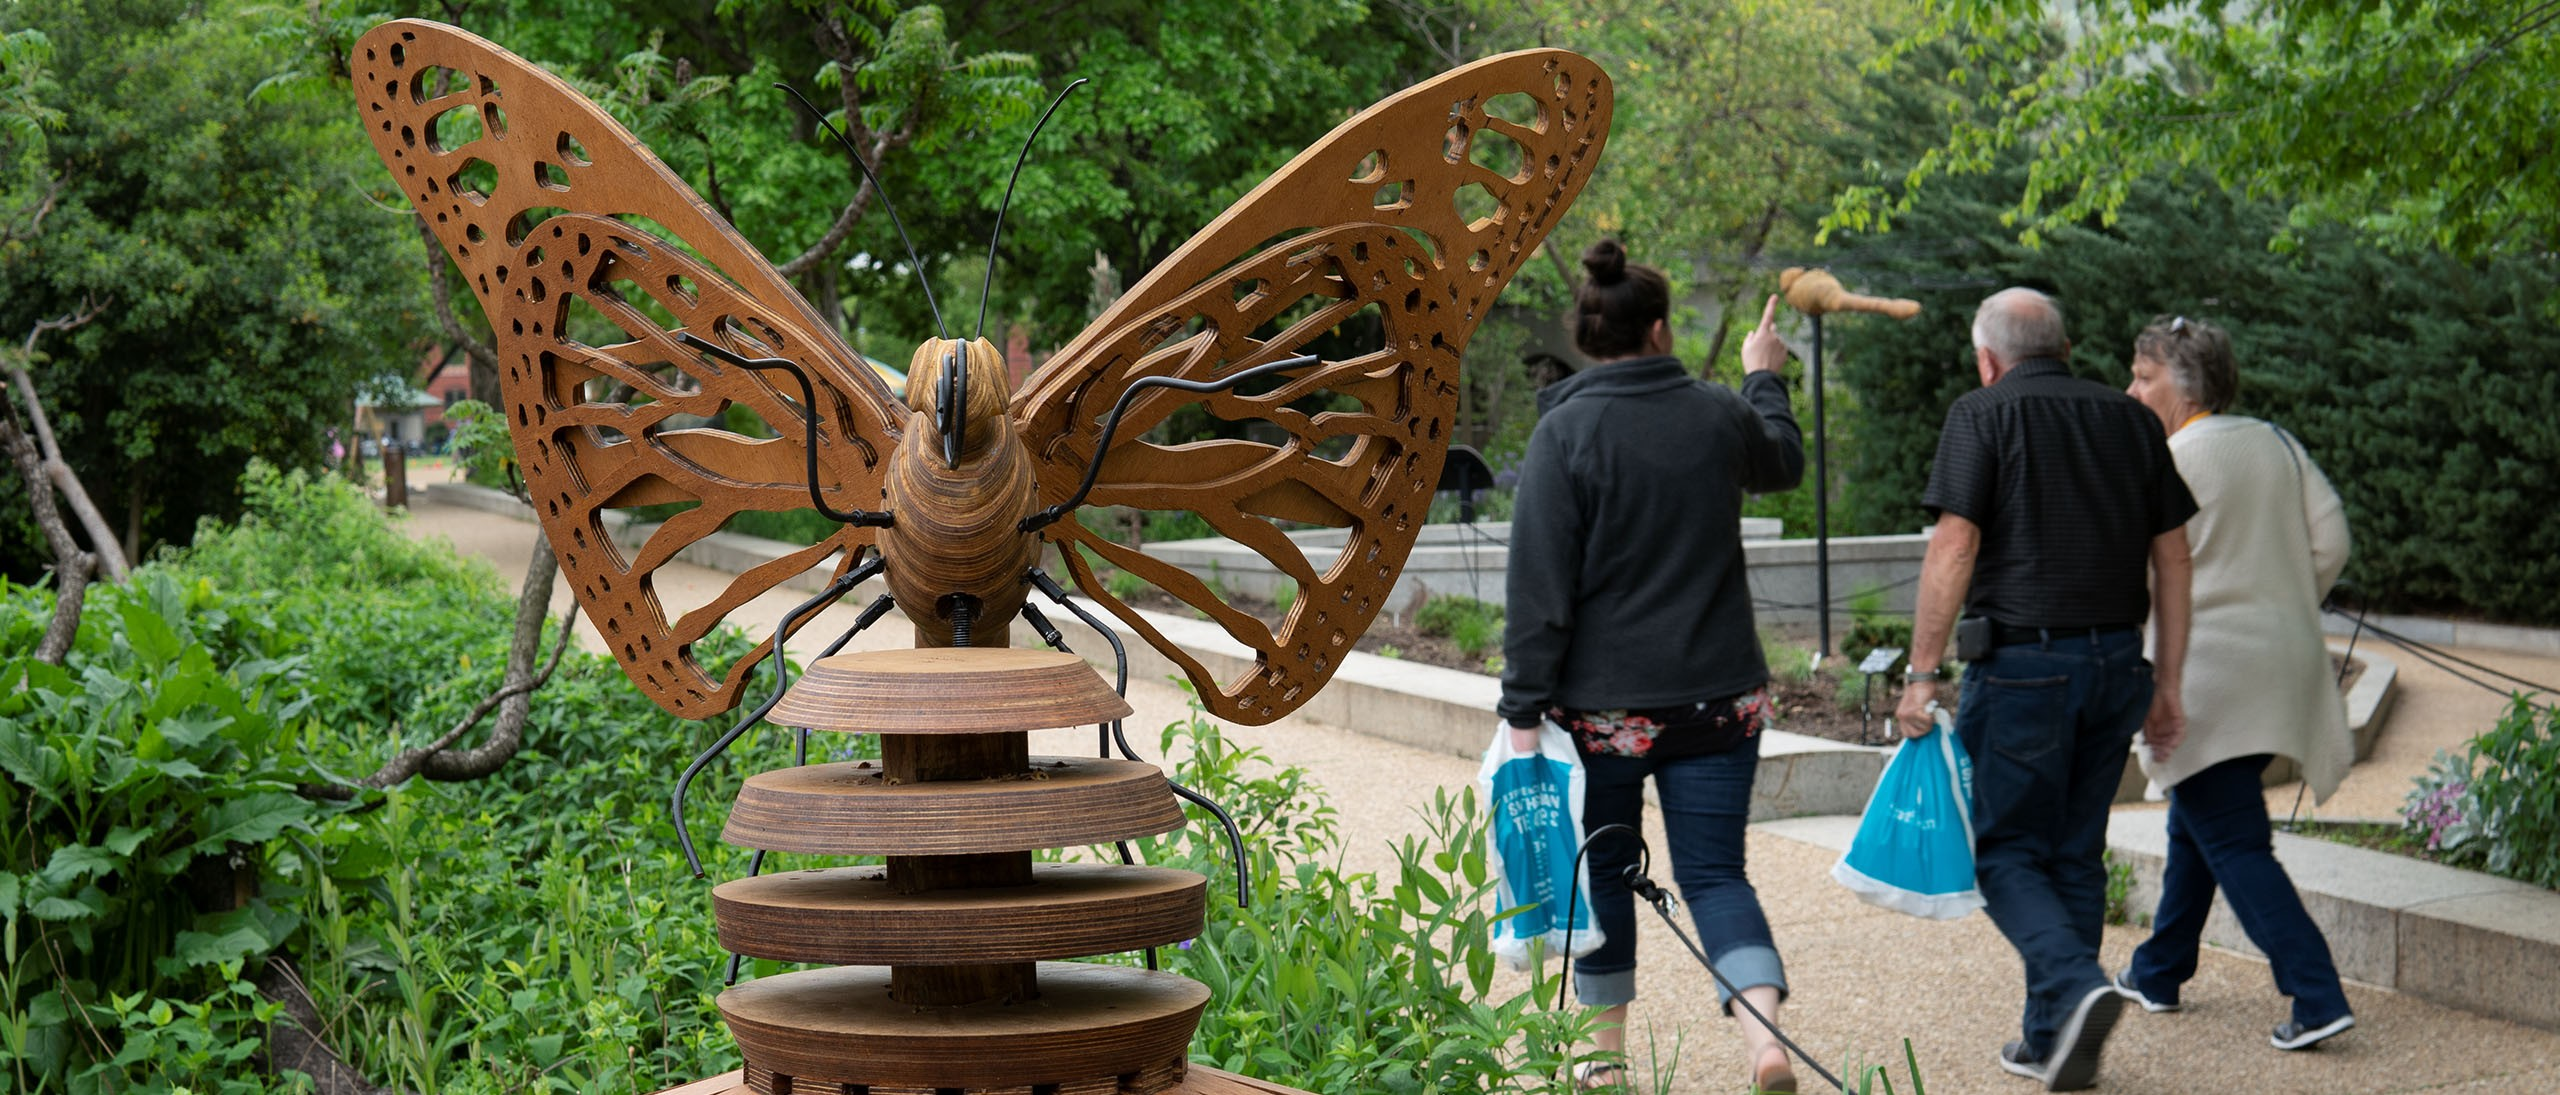 Habitat Exhibition in the Pollinator Garden at the National Museum of Natural History